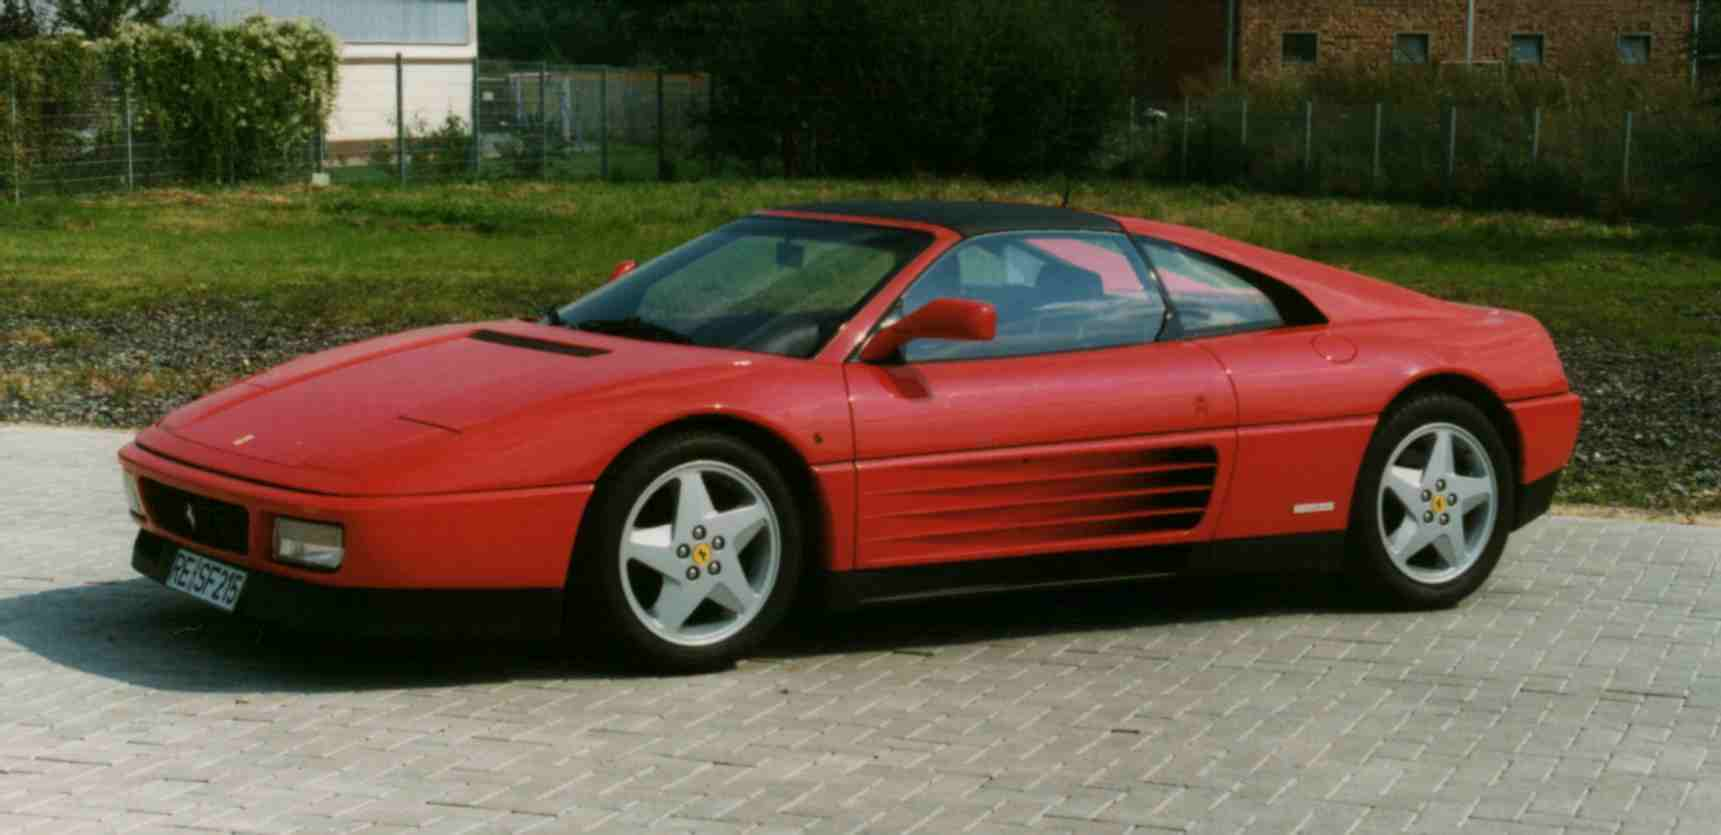 topworldauto photos of ferrari 348 ts photo galleries. Black Bedroom Furniture Sets. Home Design Ideas